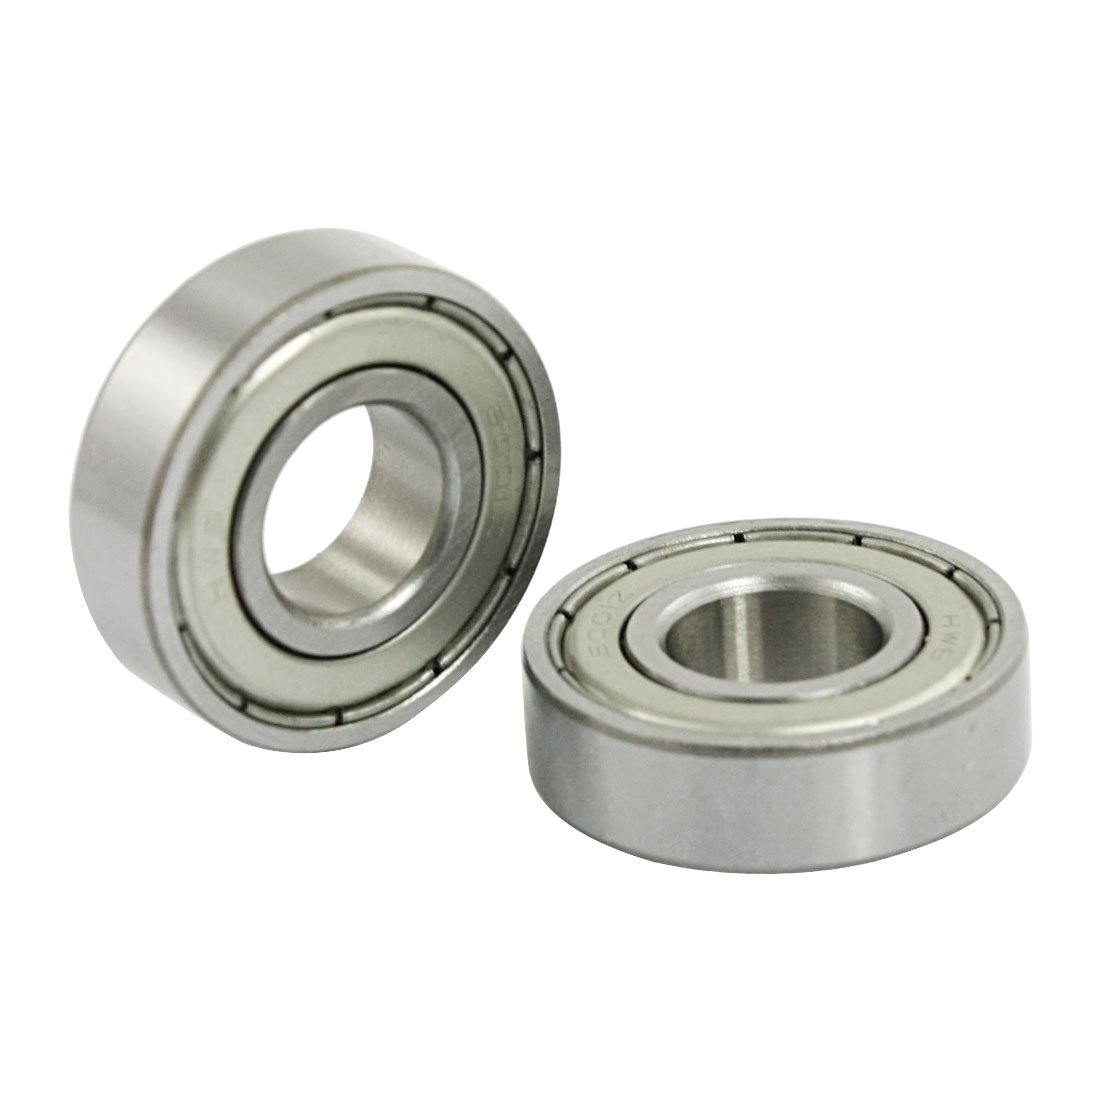 sourcingmap 5 Pcs 12mm x 28mm x 8mm 6001Z Shielded Deep Groove Radial Ball Bearing a12021500ux0296